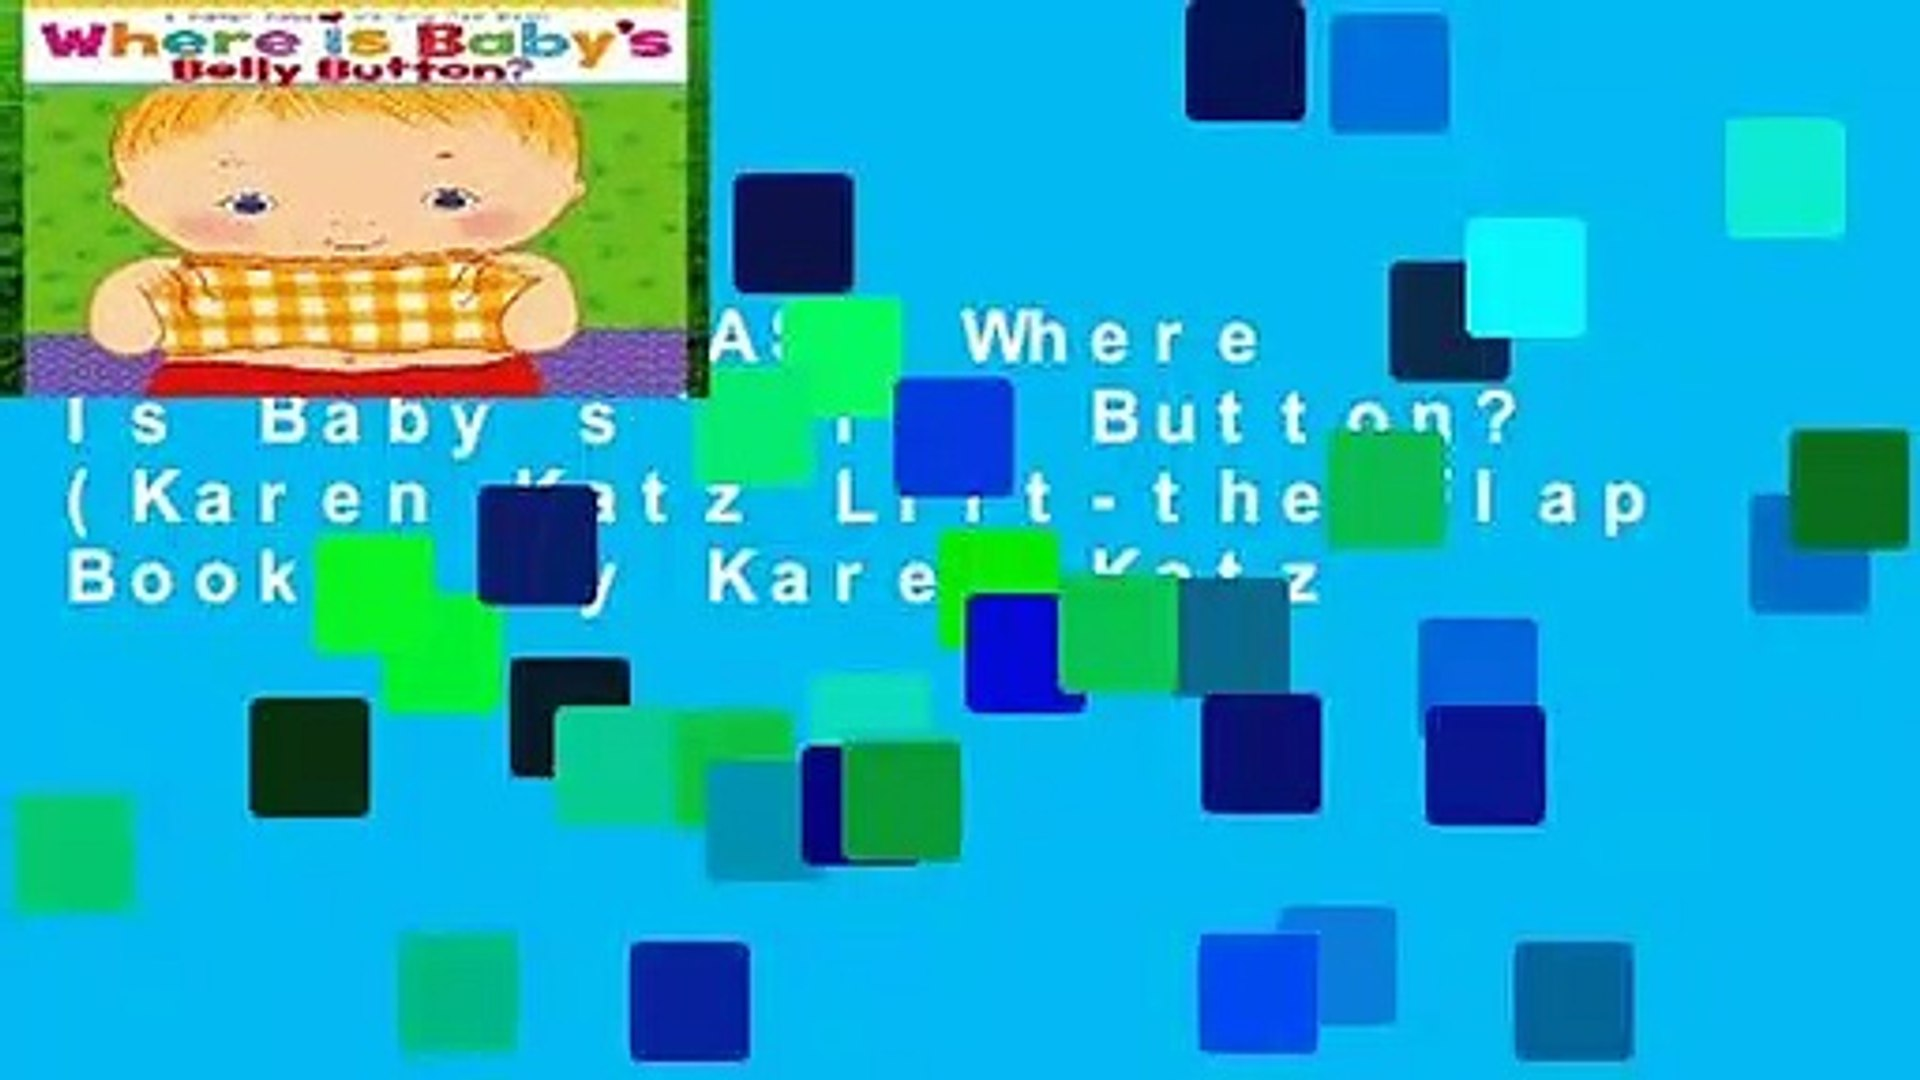 [GIFT IDEAS] Where Is Baby s Belly Button? (Karen Katz Lift-the-Flap Books) by Karen Katz